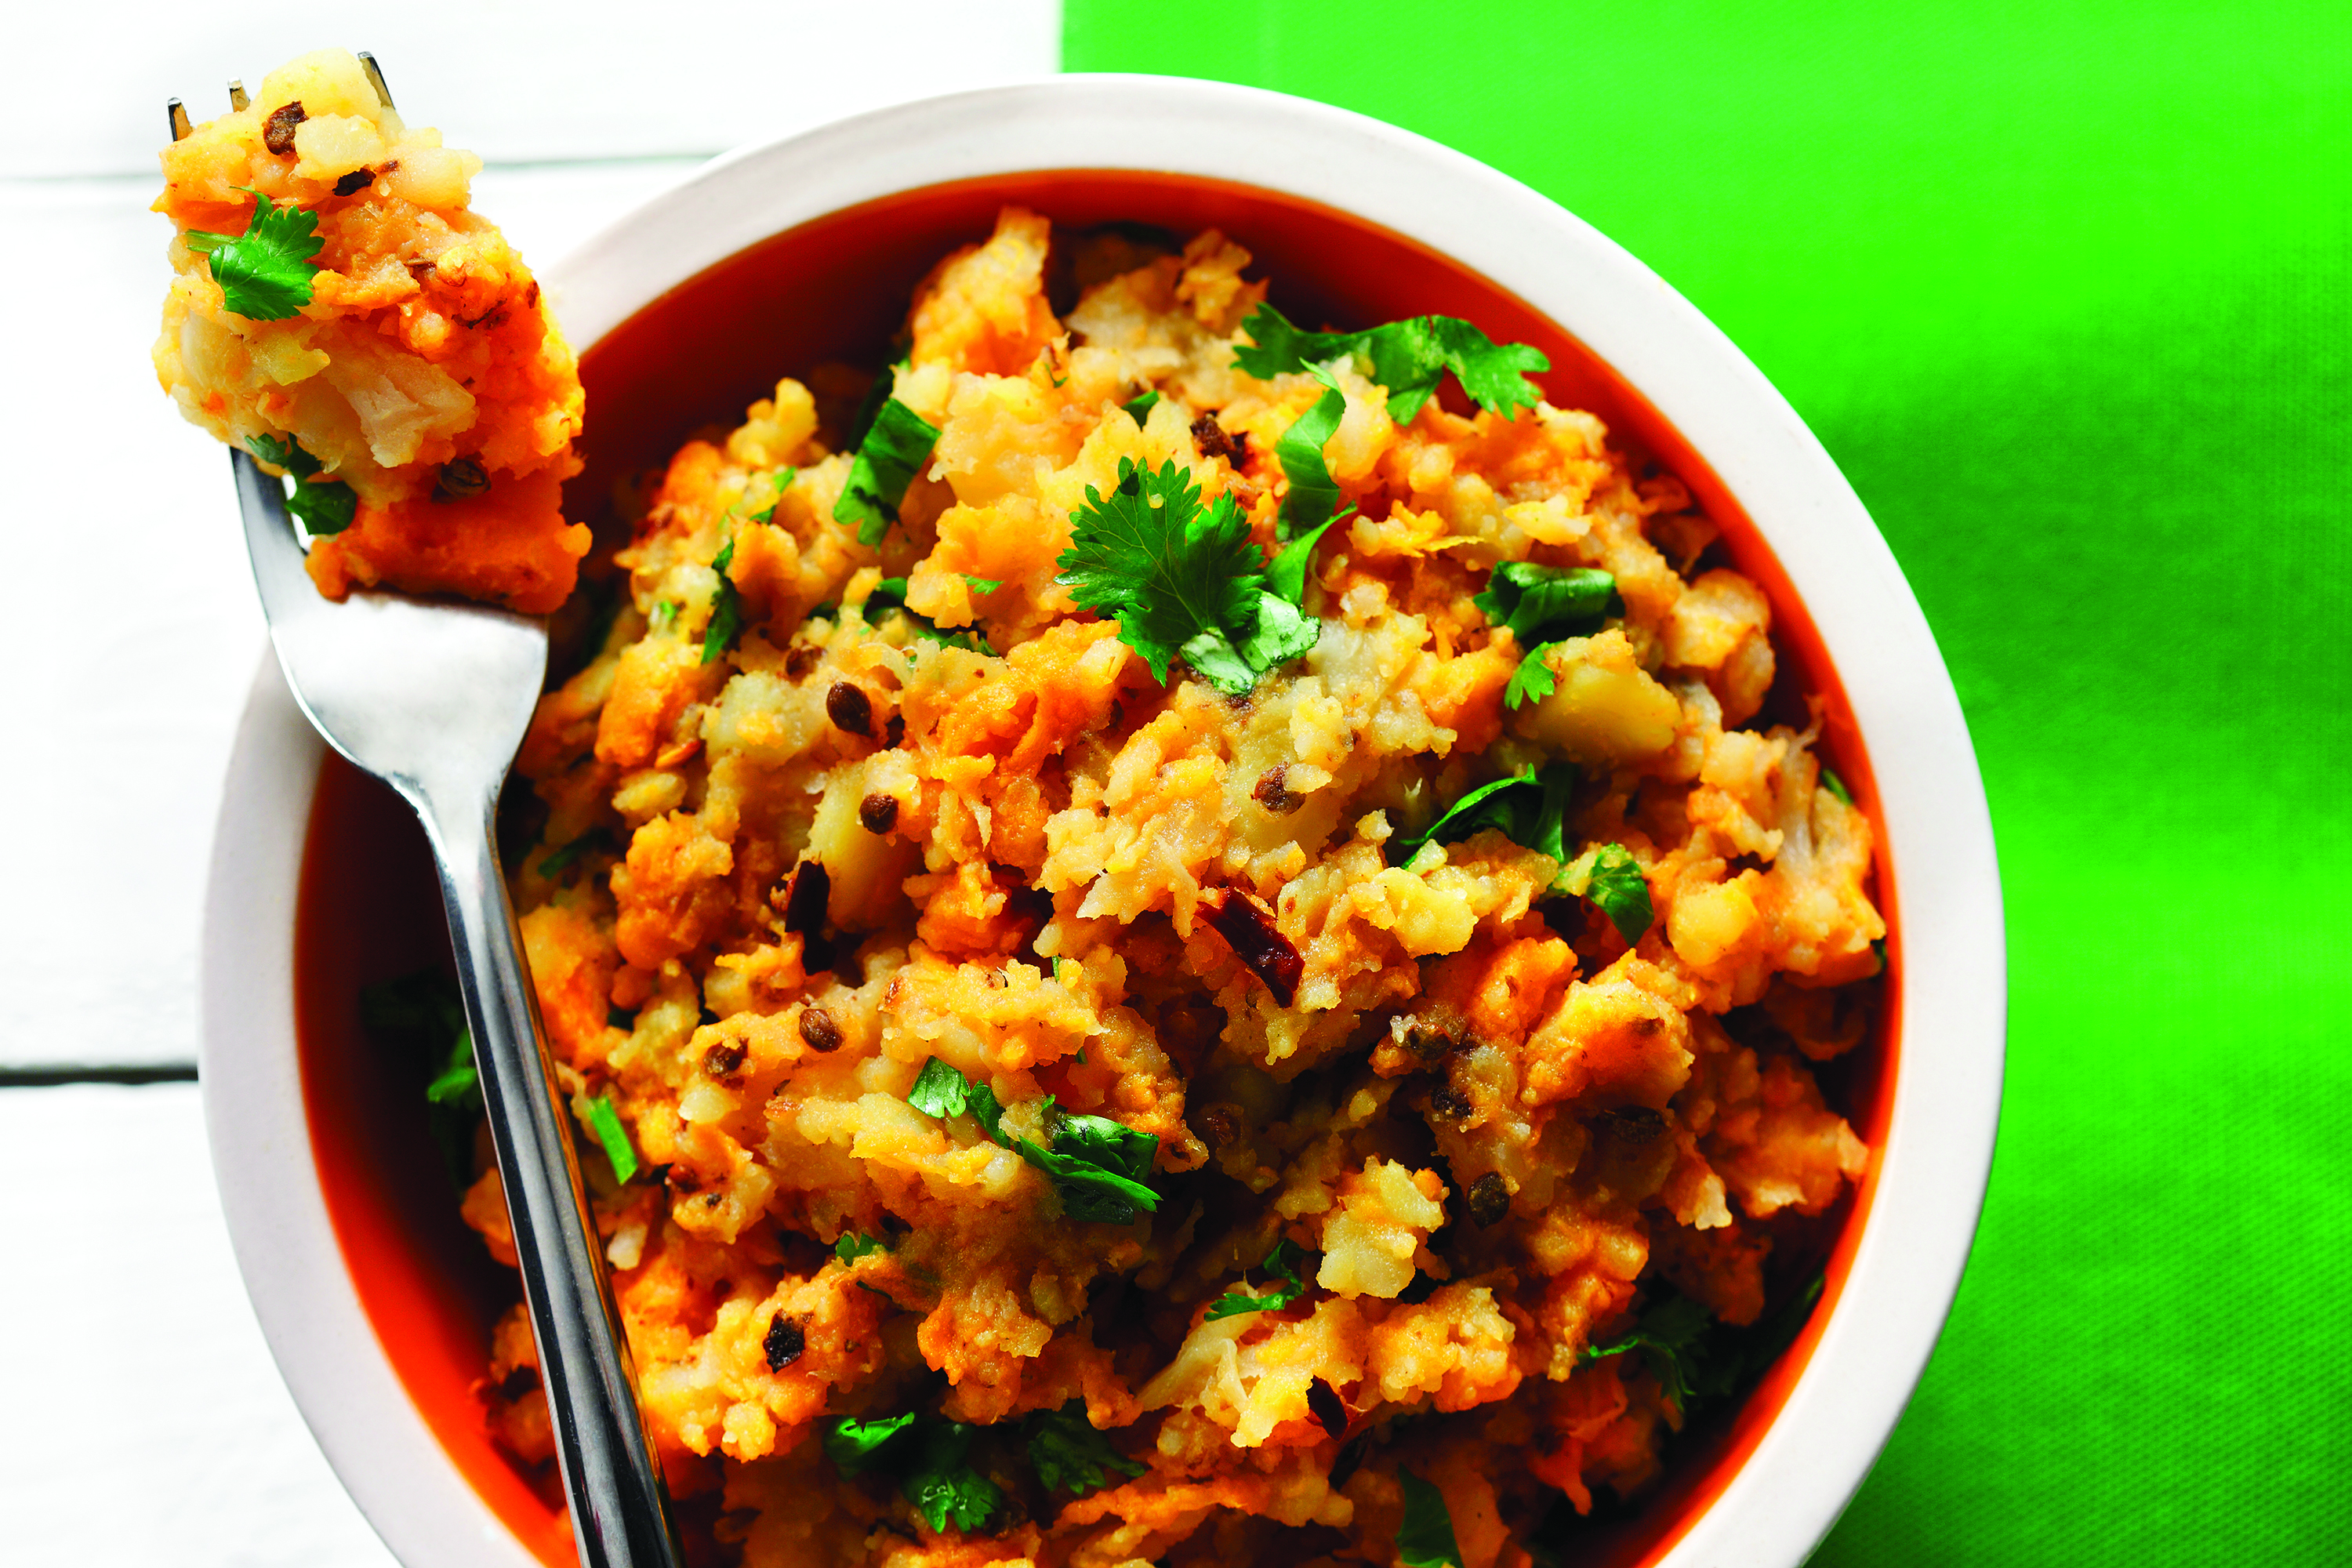 Mashed sweet potato, turnip, parsnip topped with coriander seeds and fresh cilantro